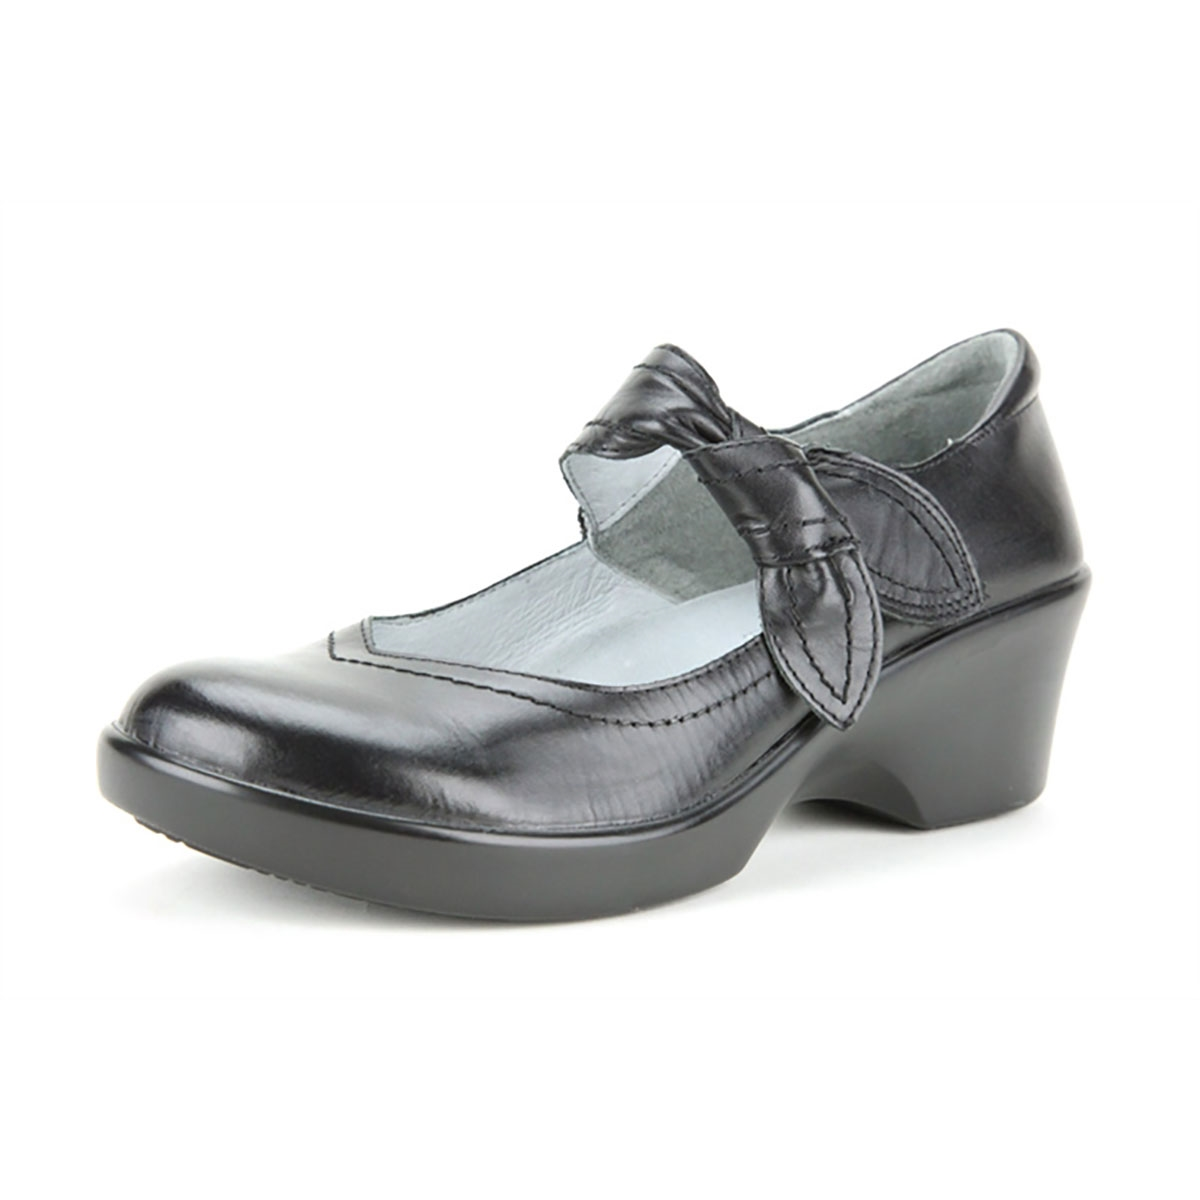 Alegria Ella Black Nappa The Alegria Shoe Experts